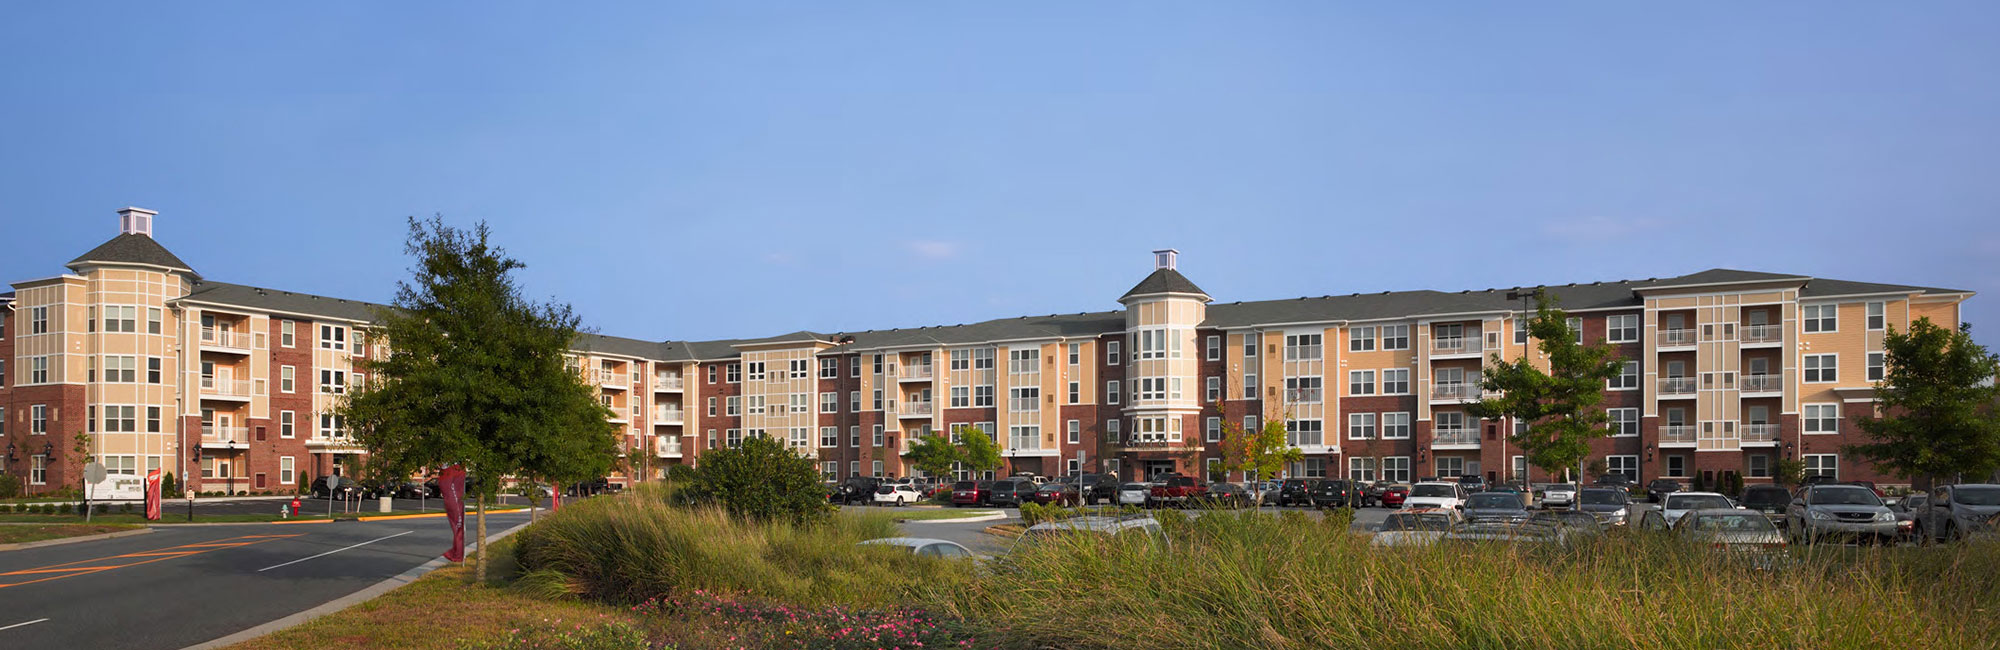 Aura at Towne Place apartments